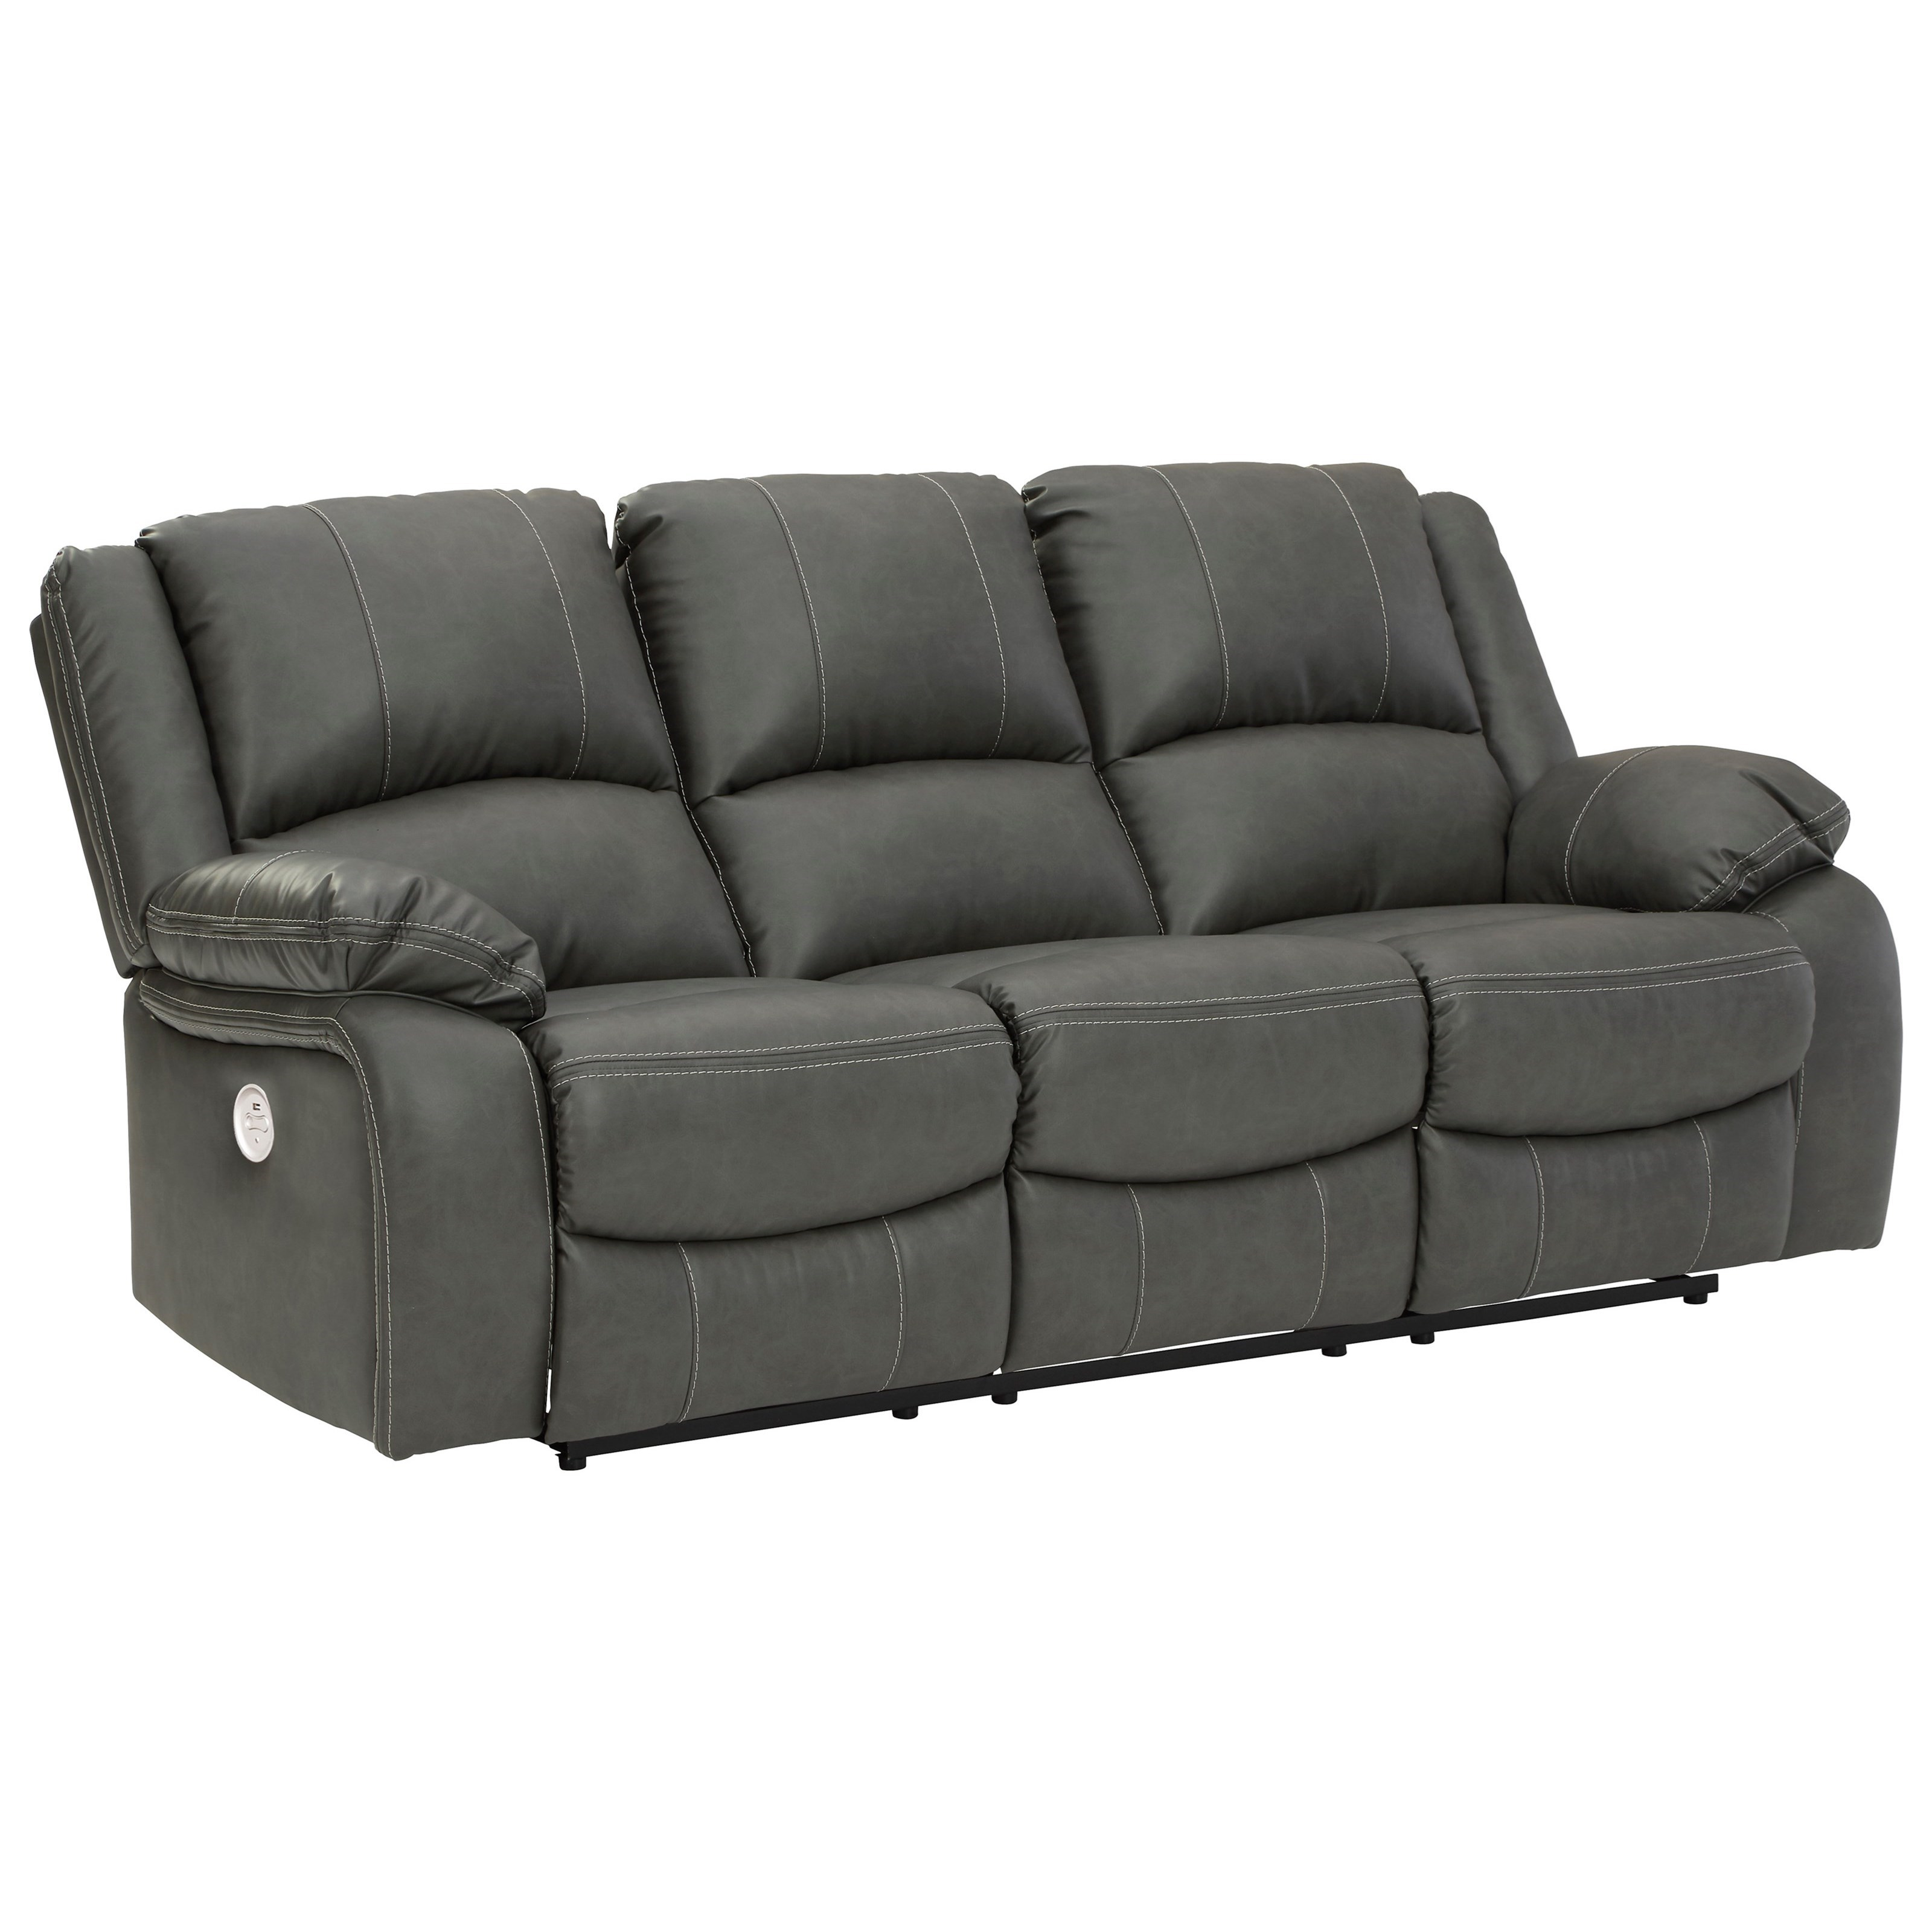 Calderwell Reclining Power Sofa by Signature Design by Ashley at Northeast Factory Direct